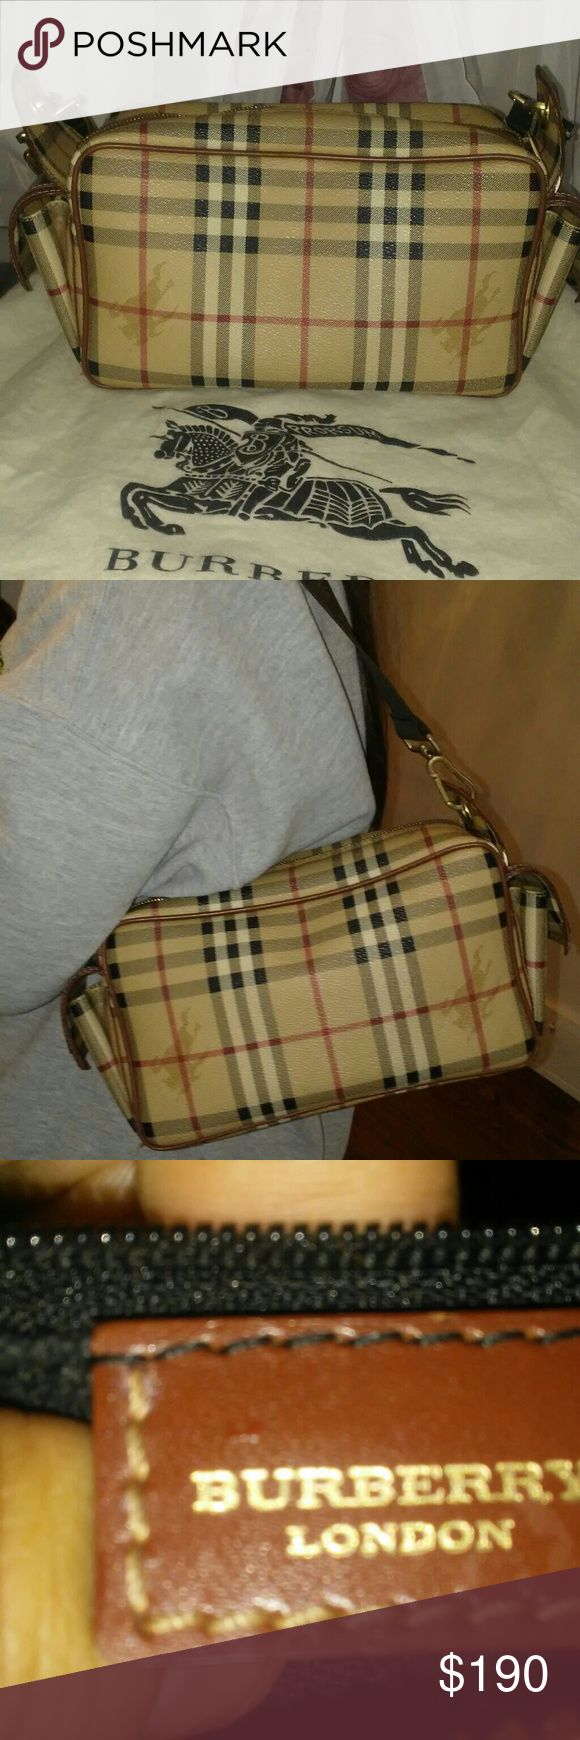 Authentic Burberry purse Authentic Burberry purse💫excellent condition💫 Dust bag not included!✨Give me offer✨ Burberry Bags Shoulder Bags